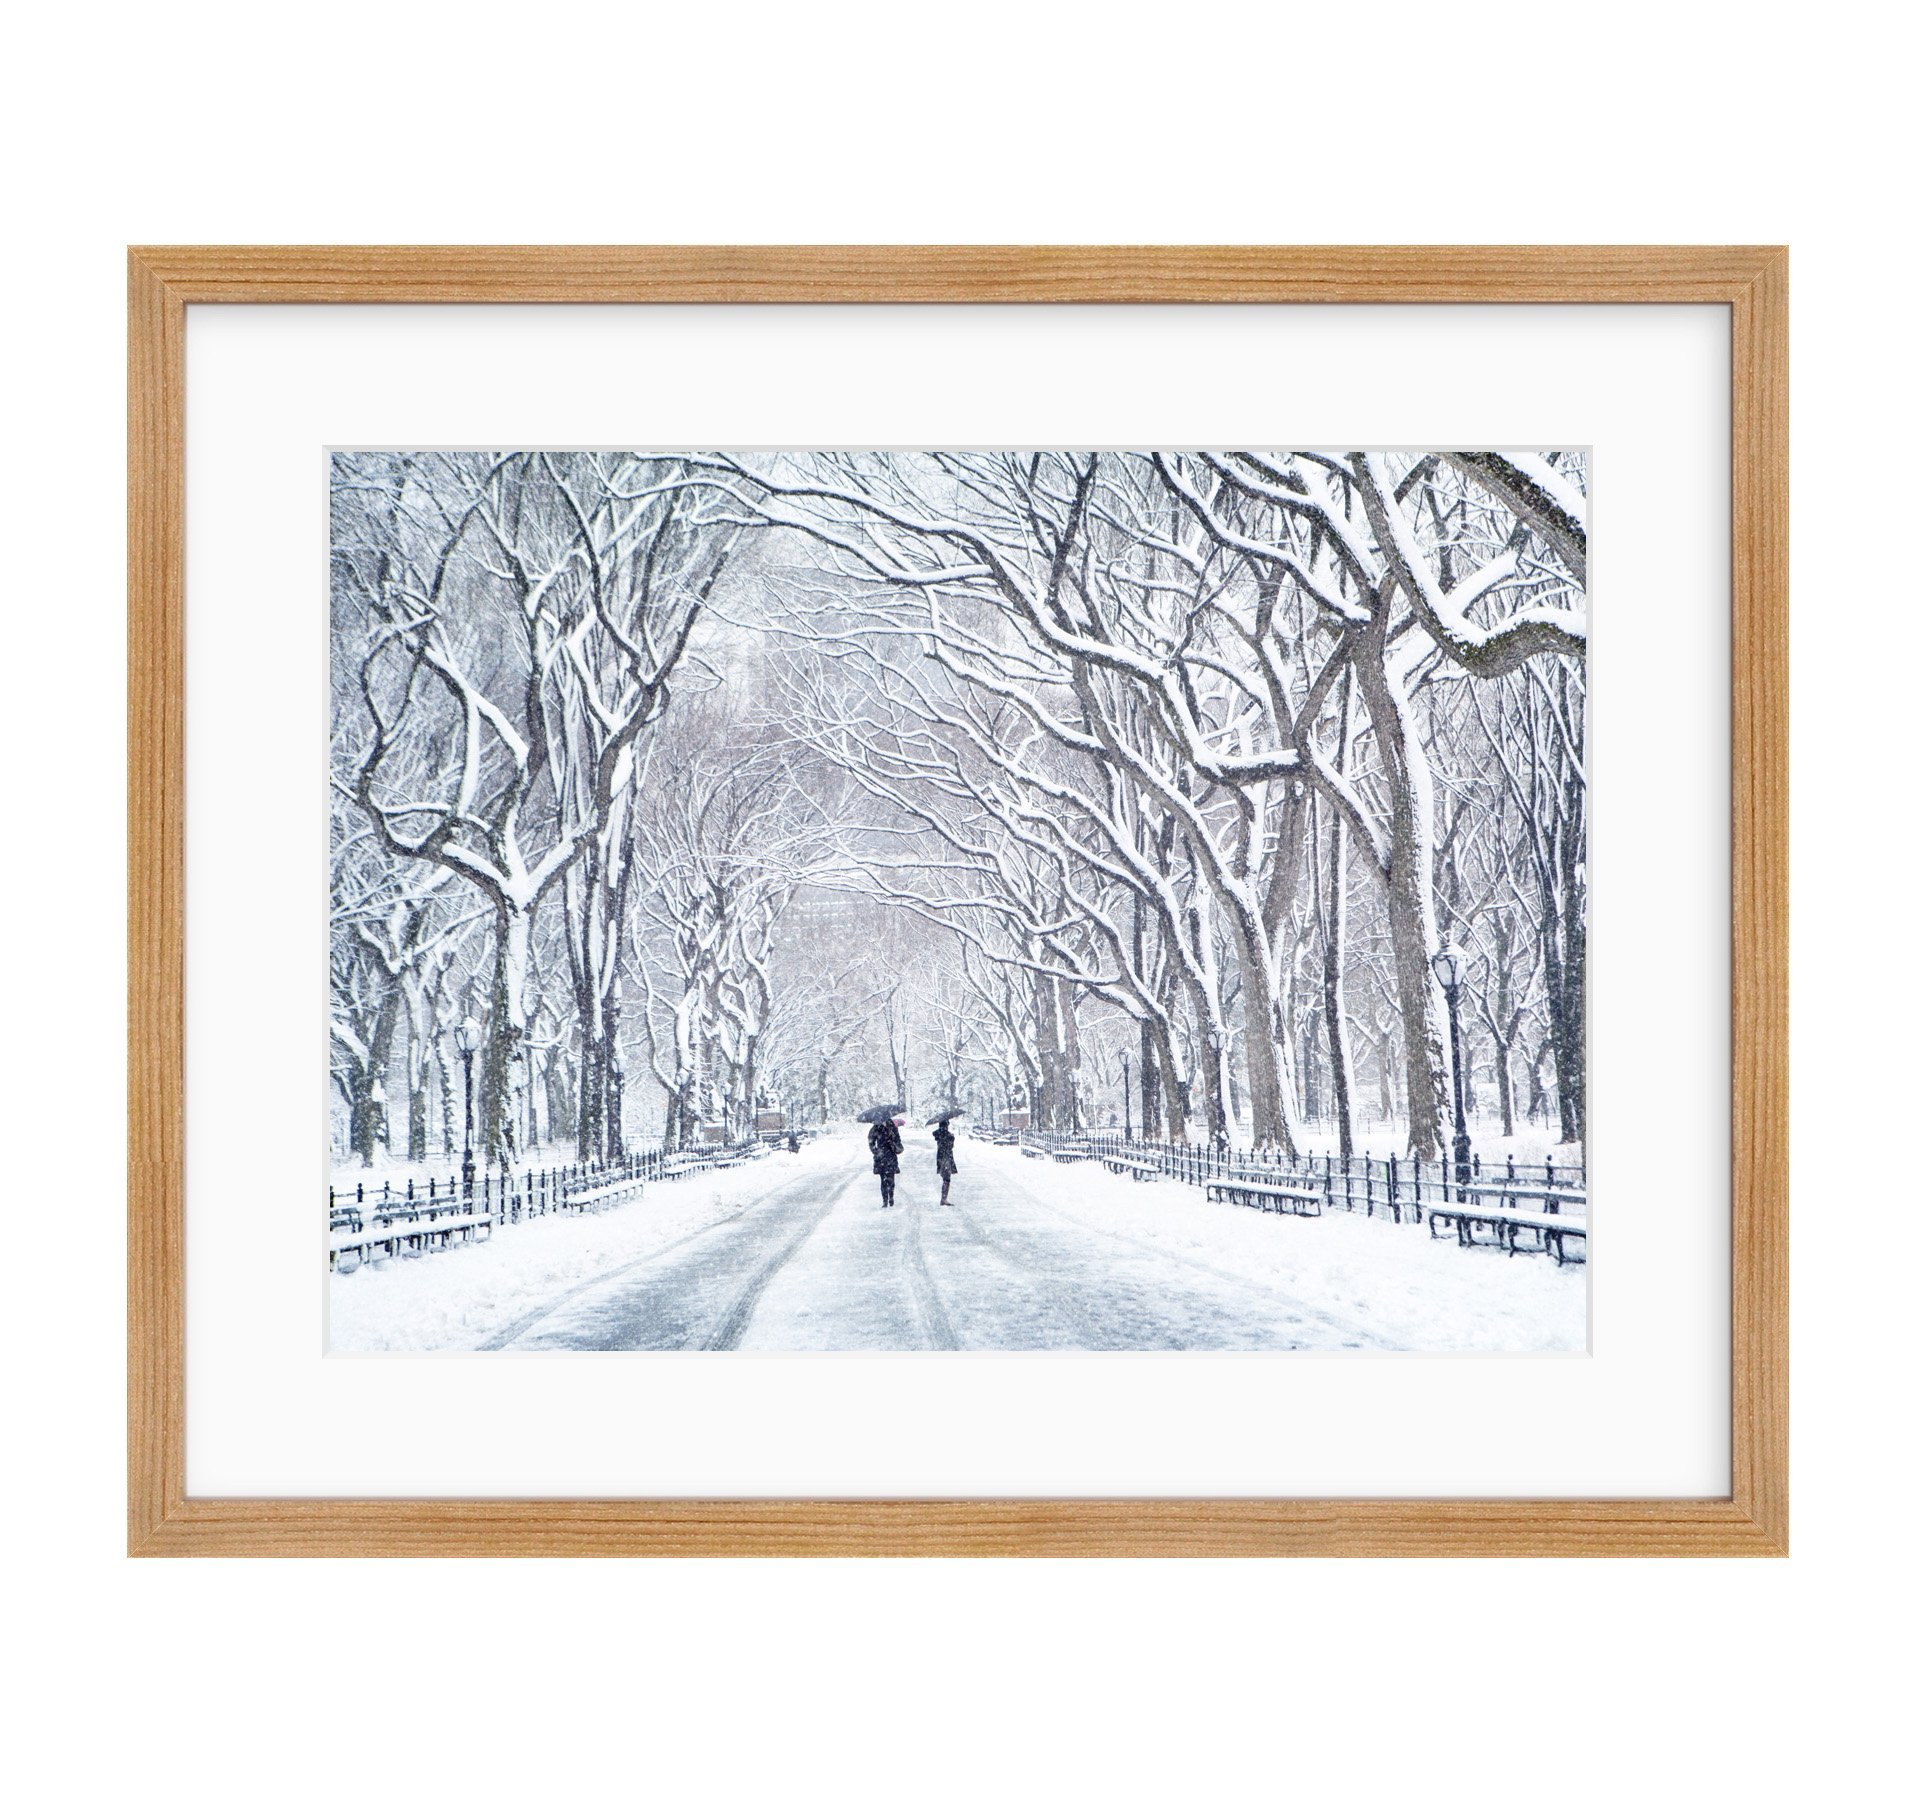 Framed Photographic Print, New York City Wall Art, Central Park in Snow, NYC Decor, The Mall in Winter'